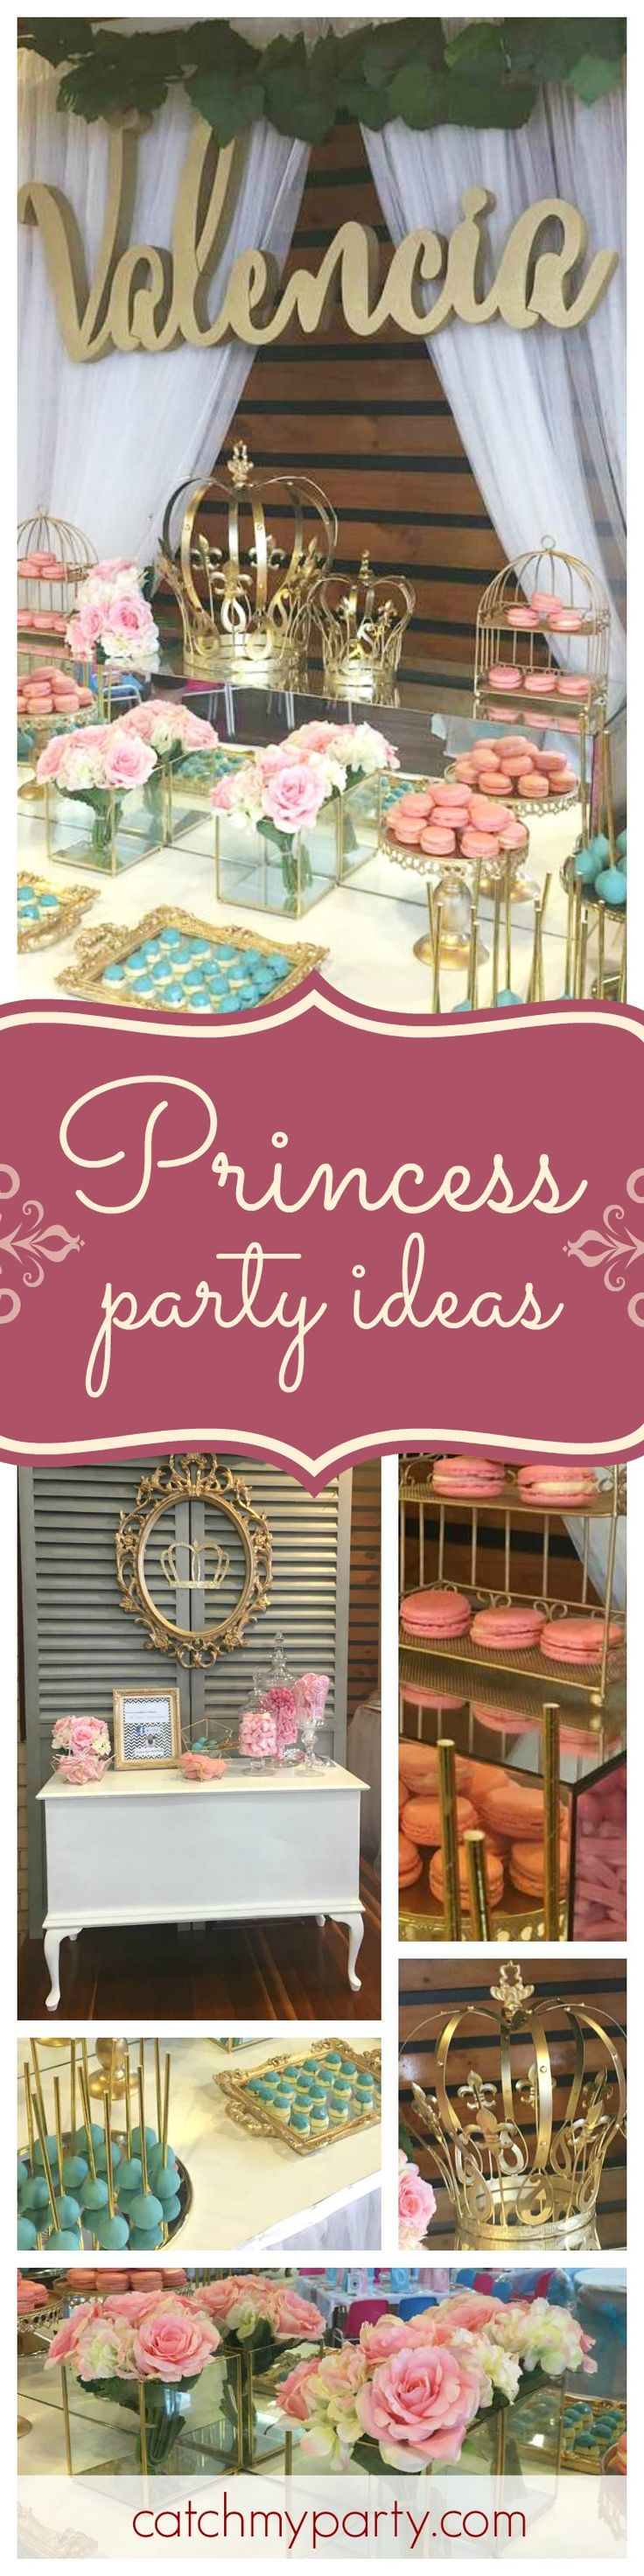 Take a look at this vintage princess birthday party. The dessert table and back drop are so pretty! See more party i deas and share yours at catchMyParty.com